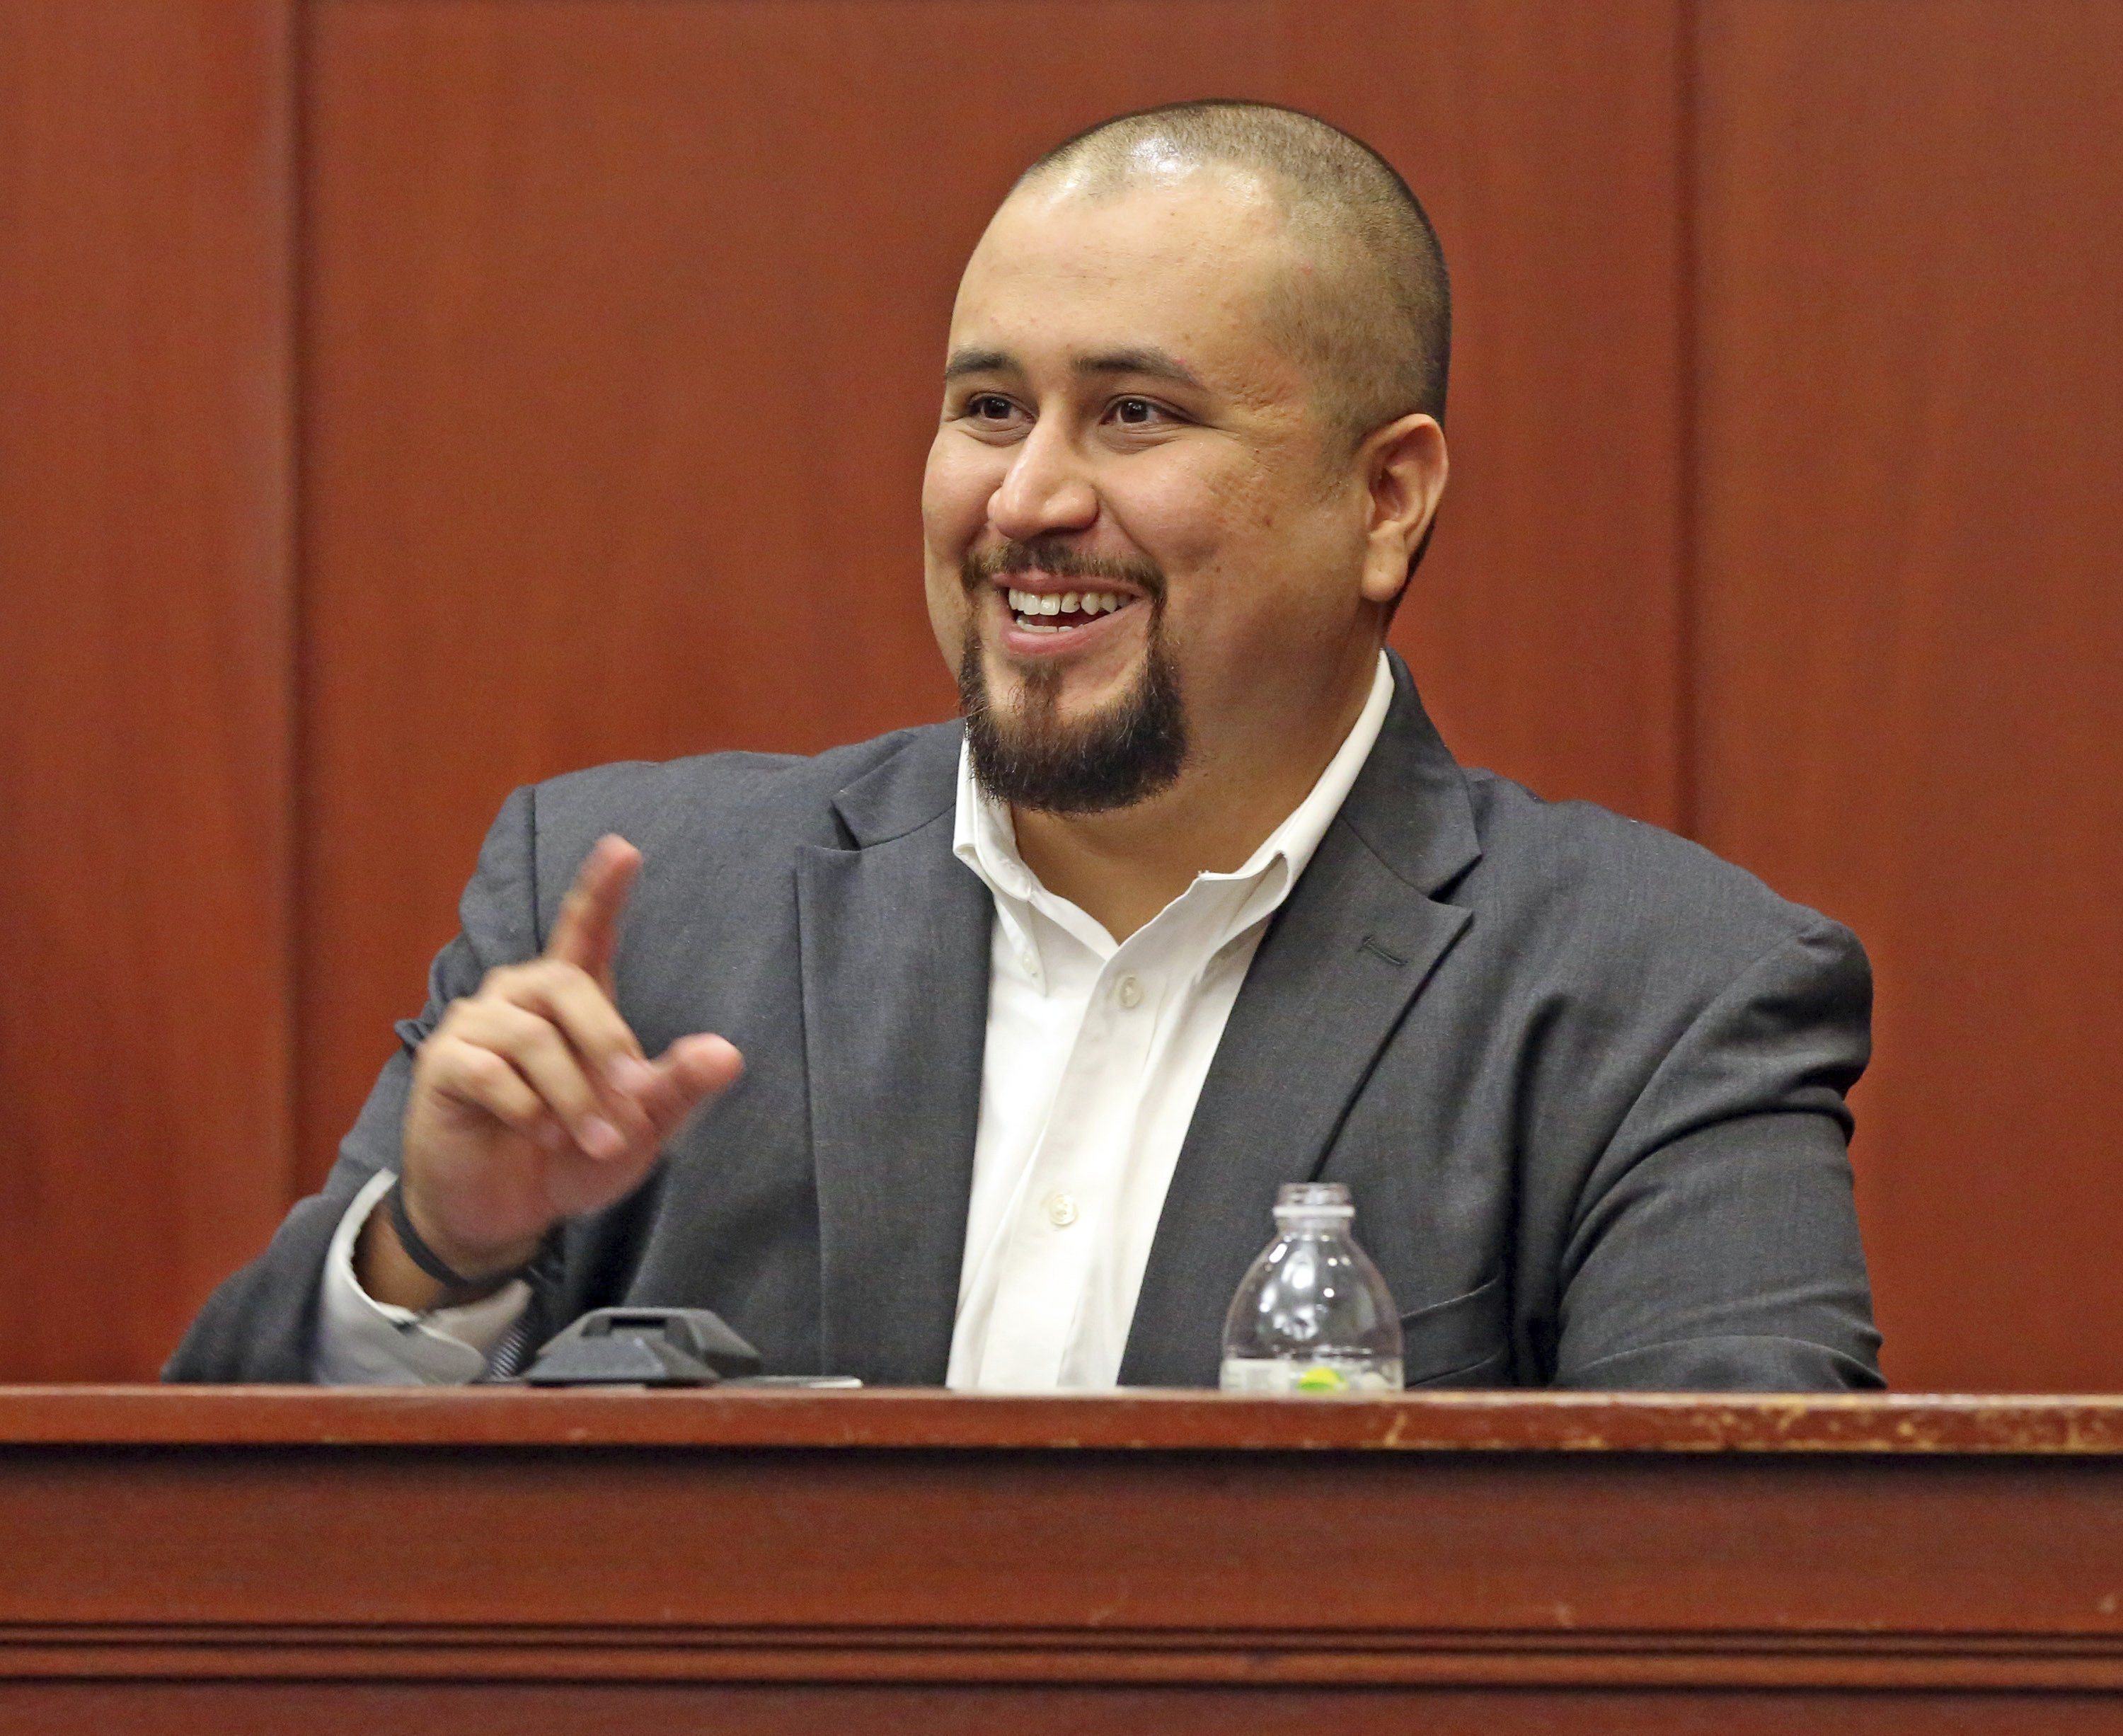 George Zimmerman Sues Trayvon Martin's Family and Their Attorneys